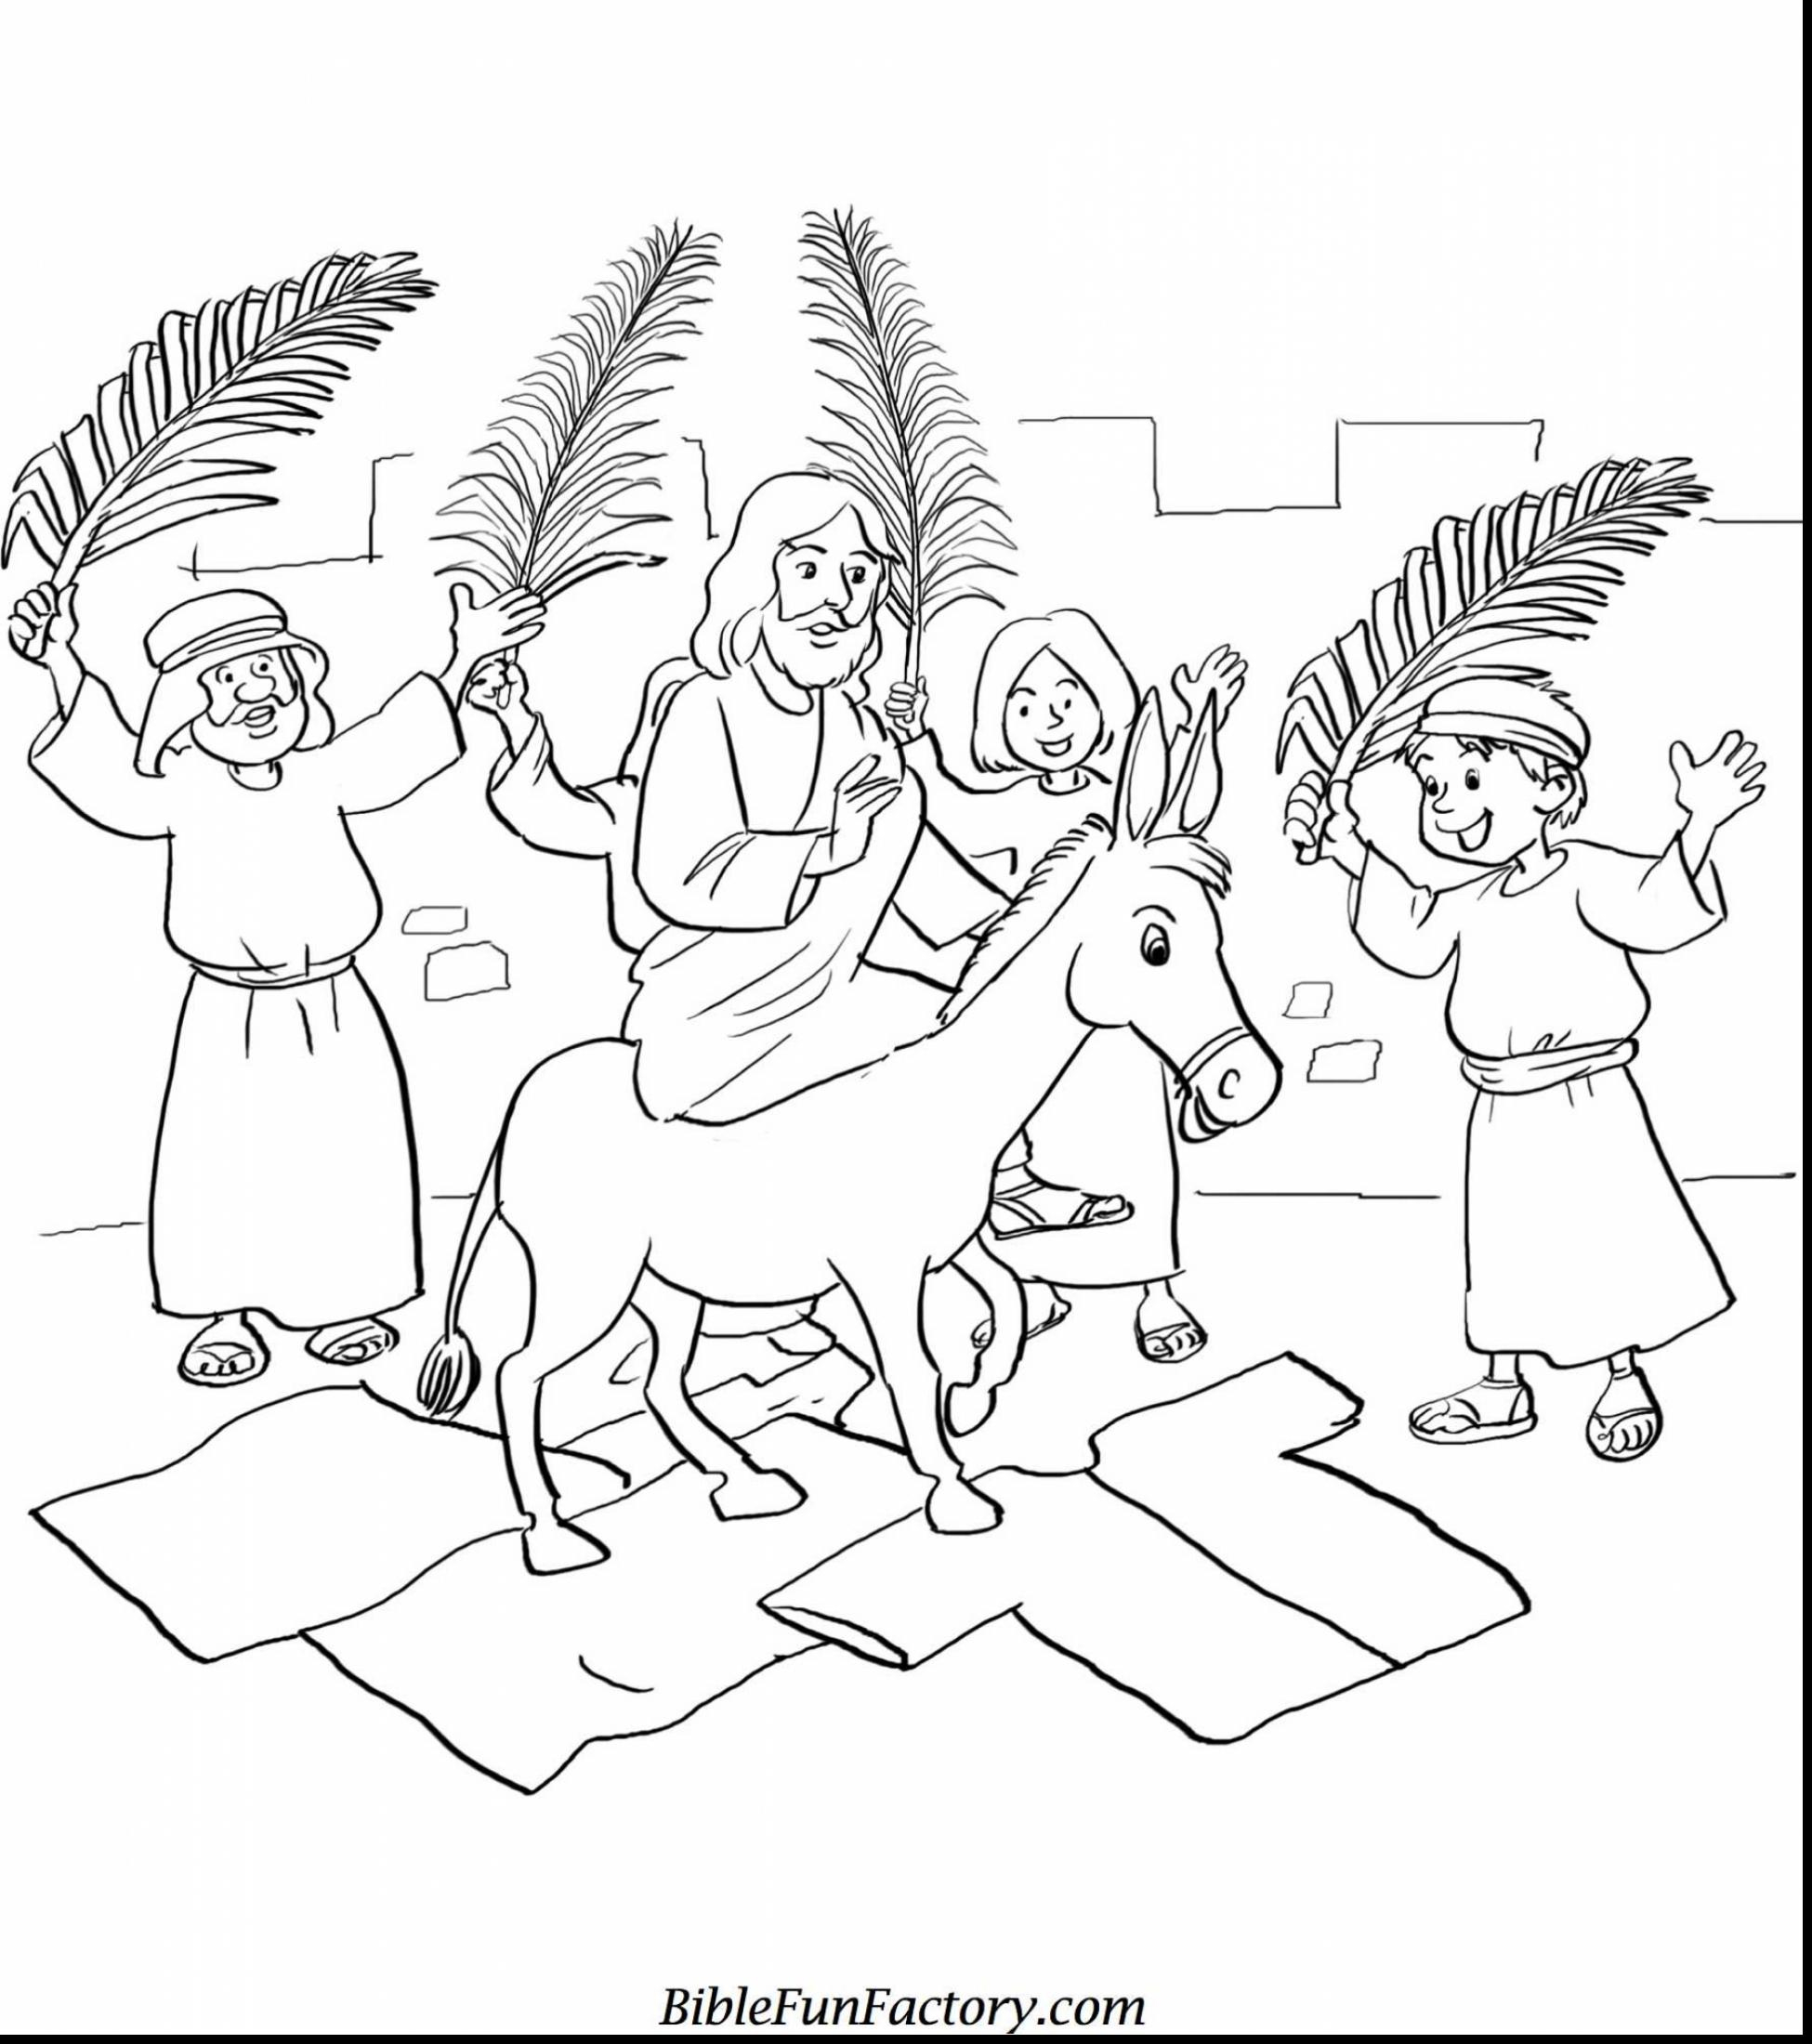 Free Bible Coloring Pages Kids Download | Free Coloring Sheets